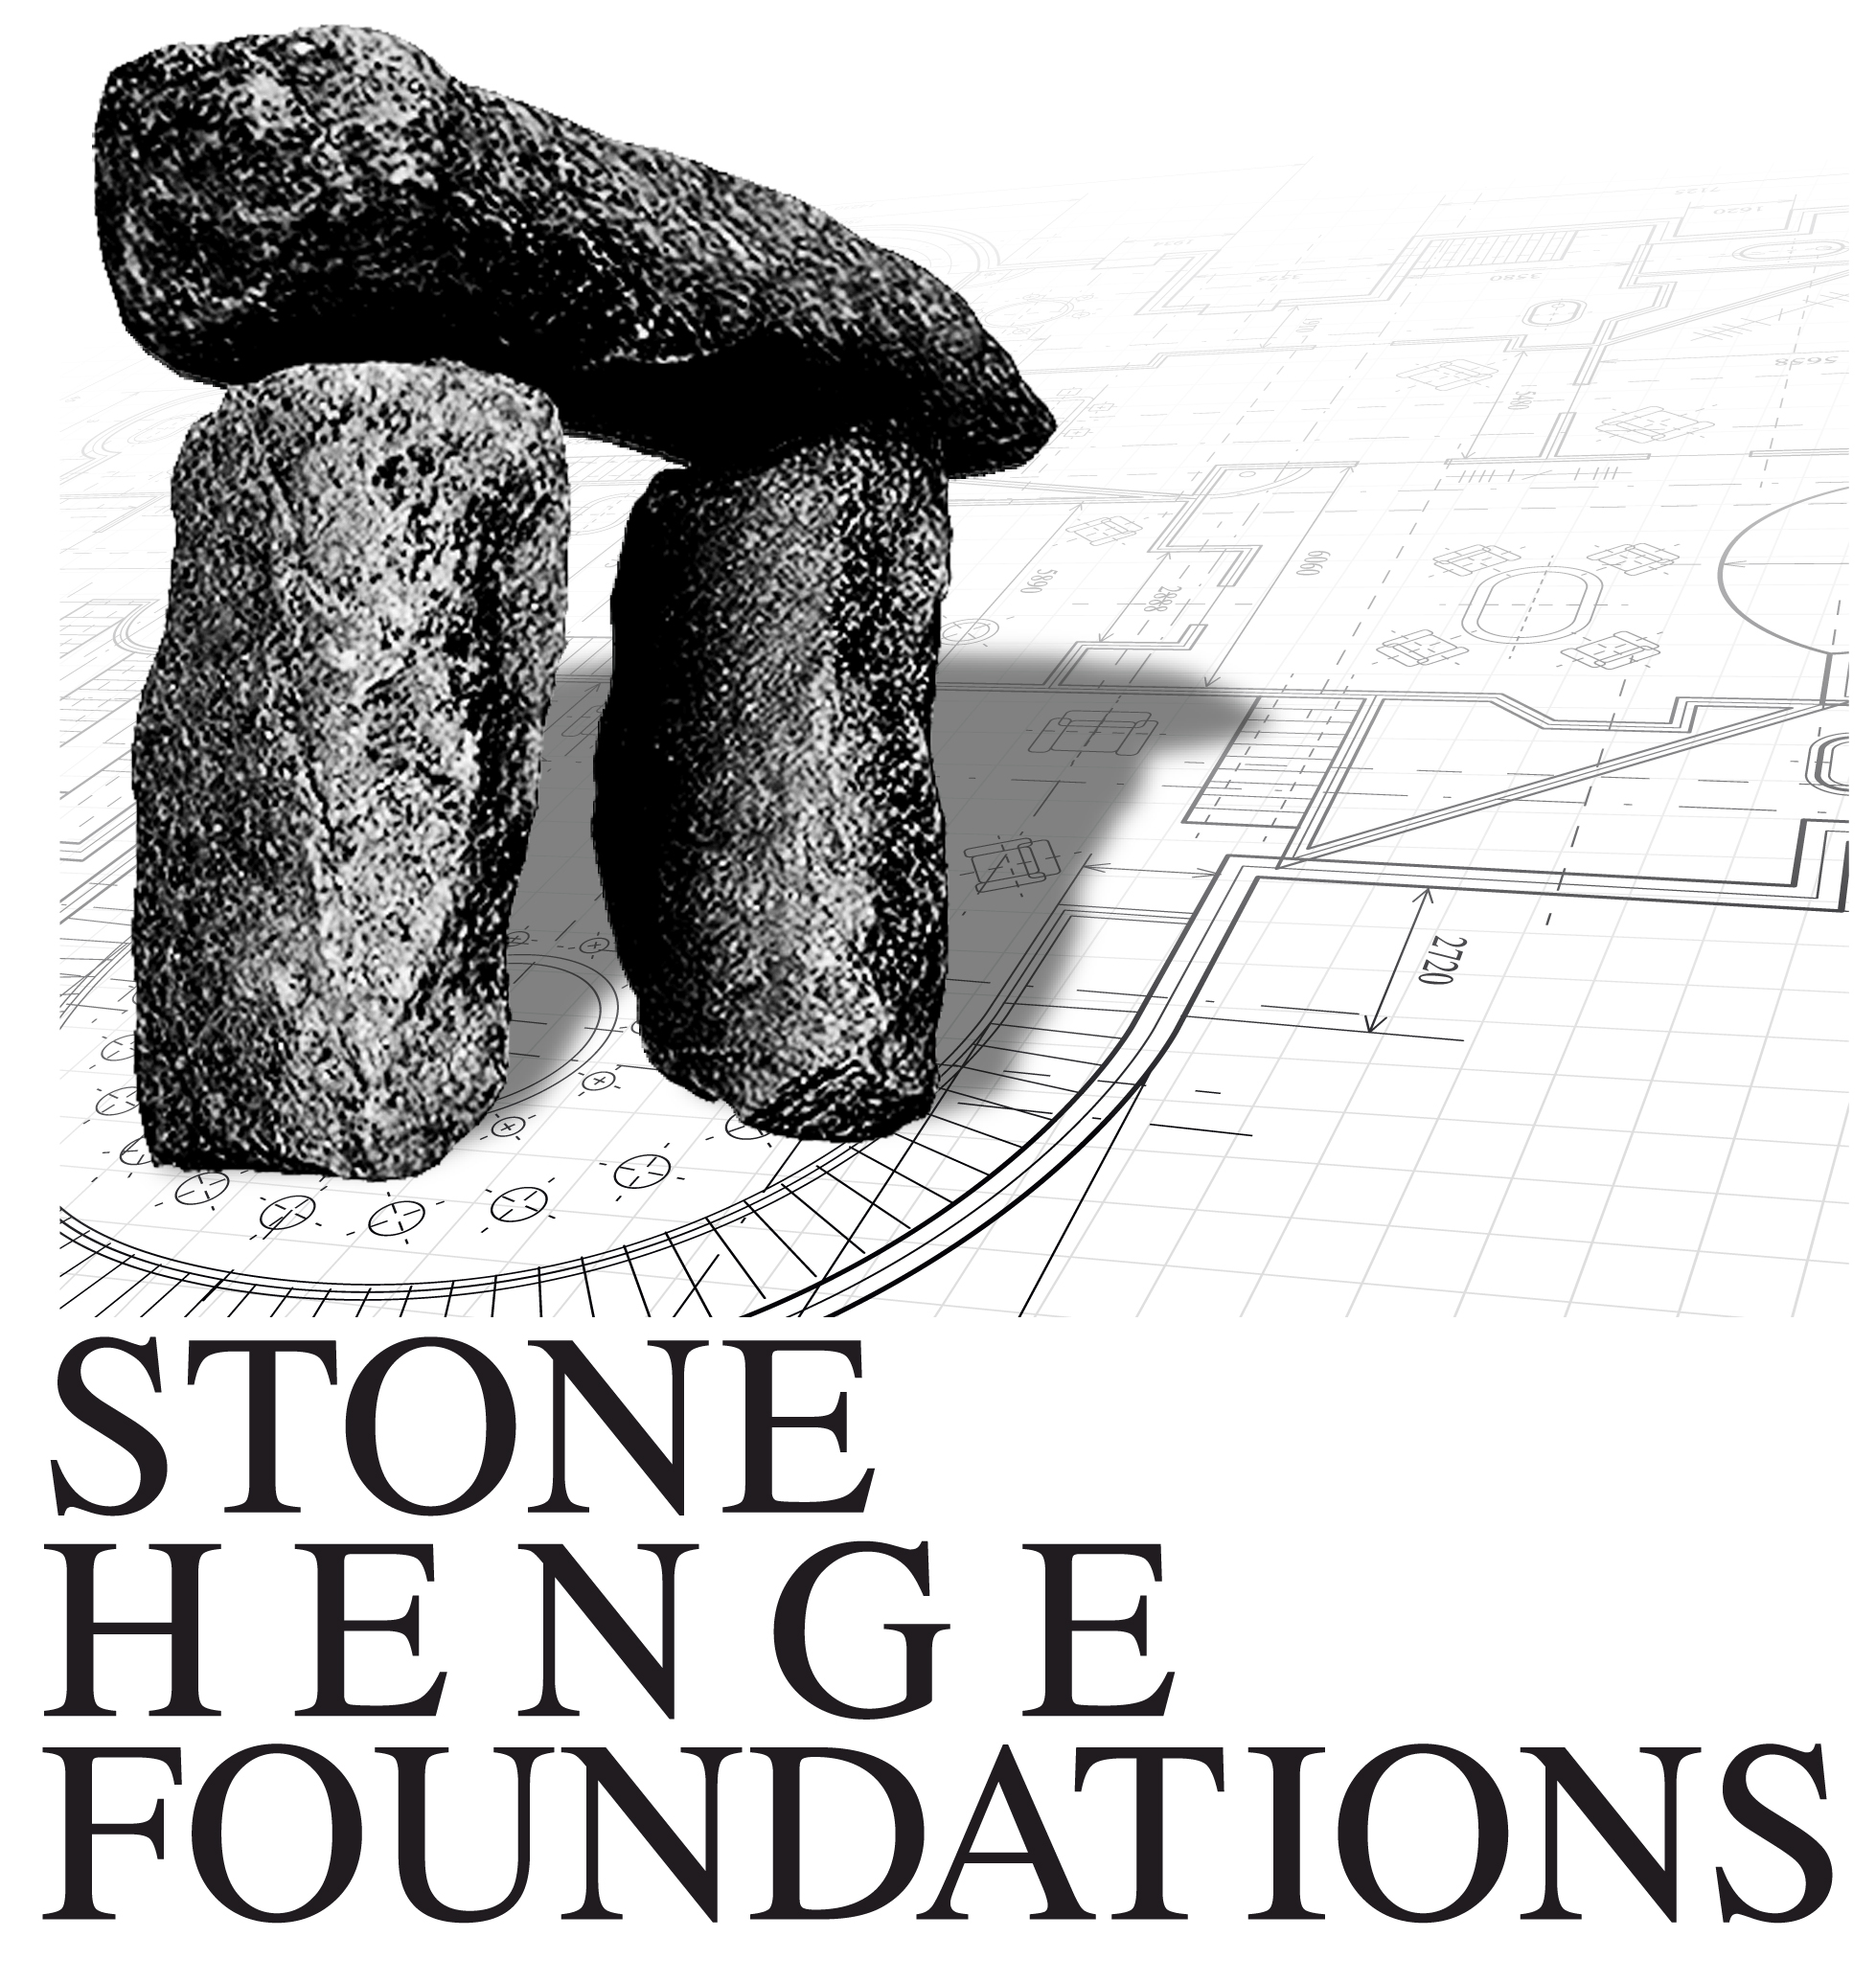 Stonehenge Foundations